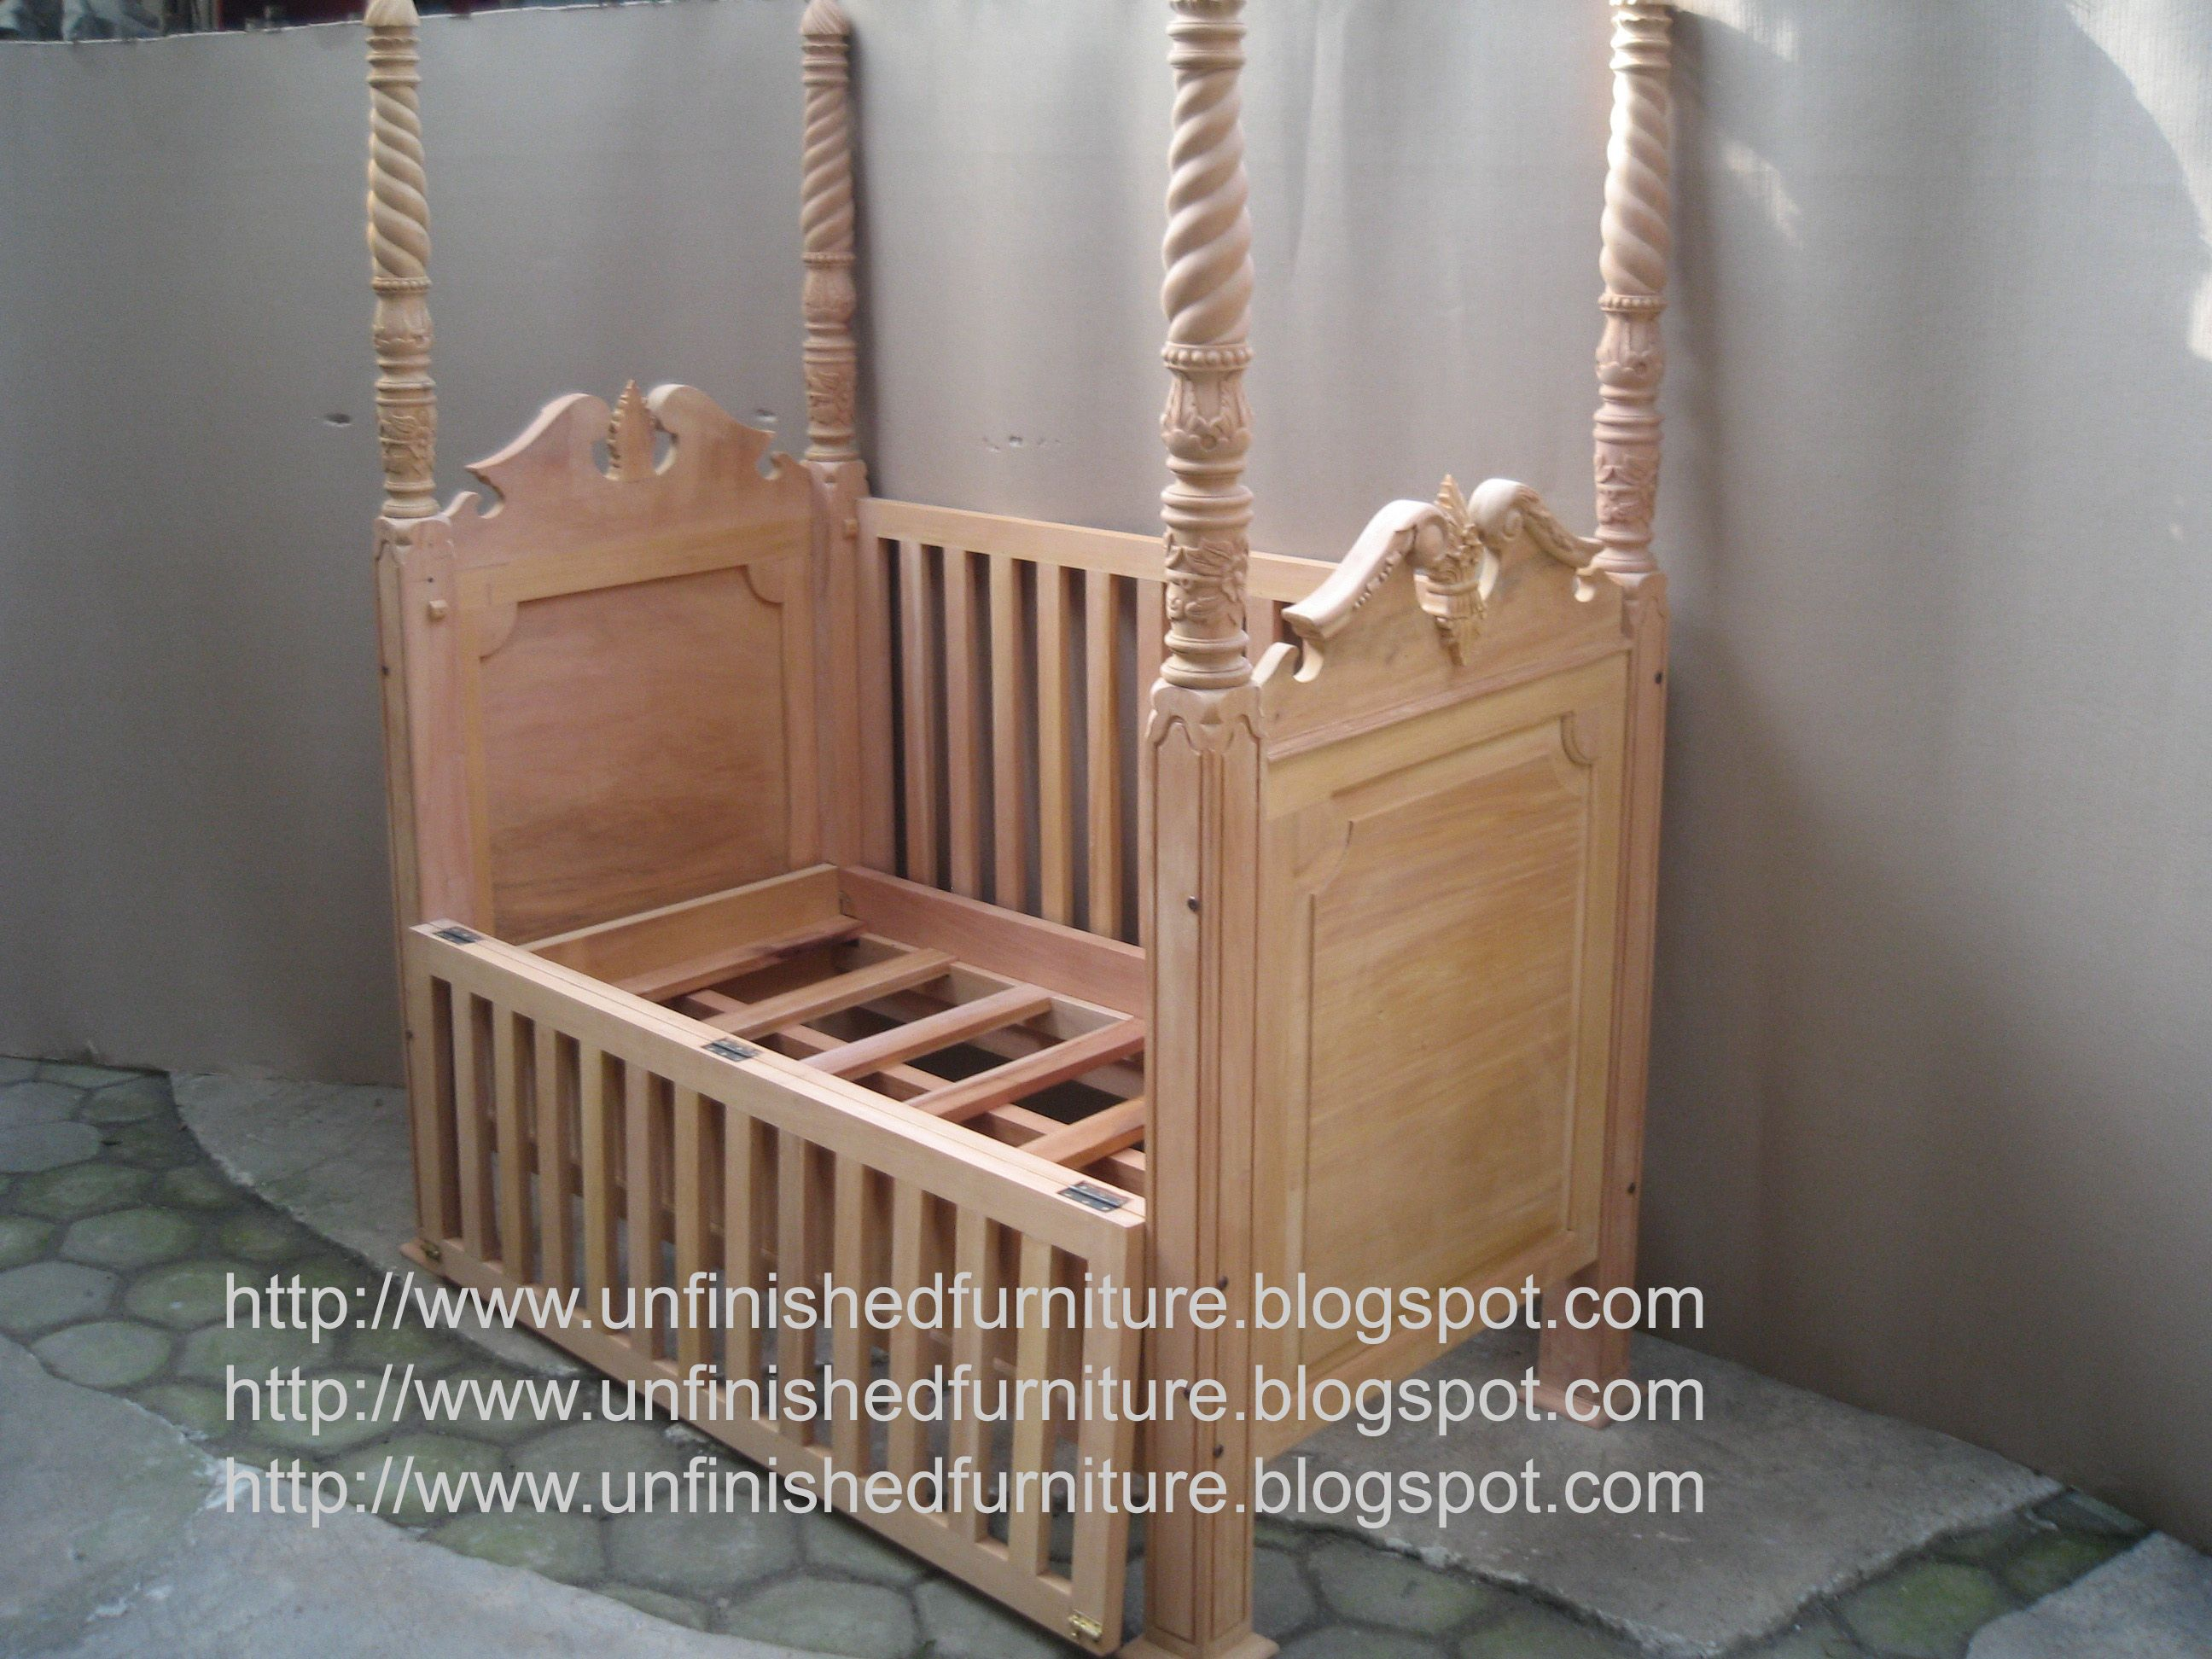 Unfinished crib for sale - Unfinished Mahogany Furniture Chippendale Poster Crib Baby Bed Made Of Fine Solid